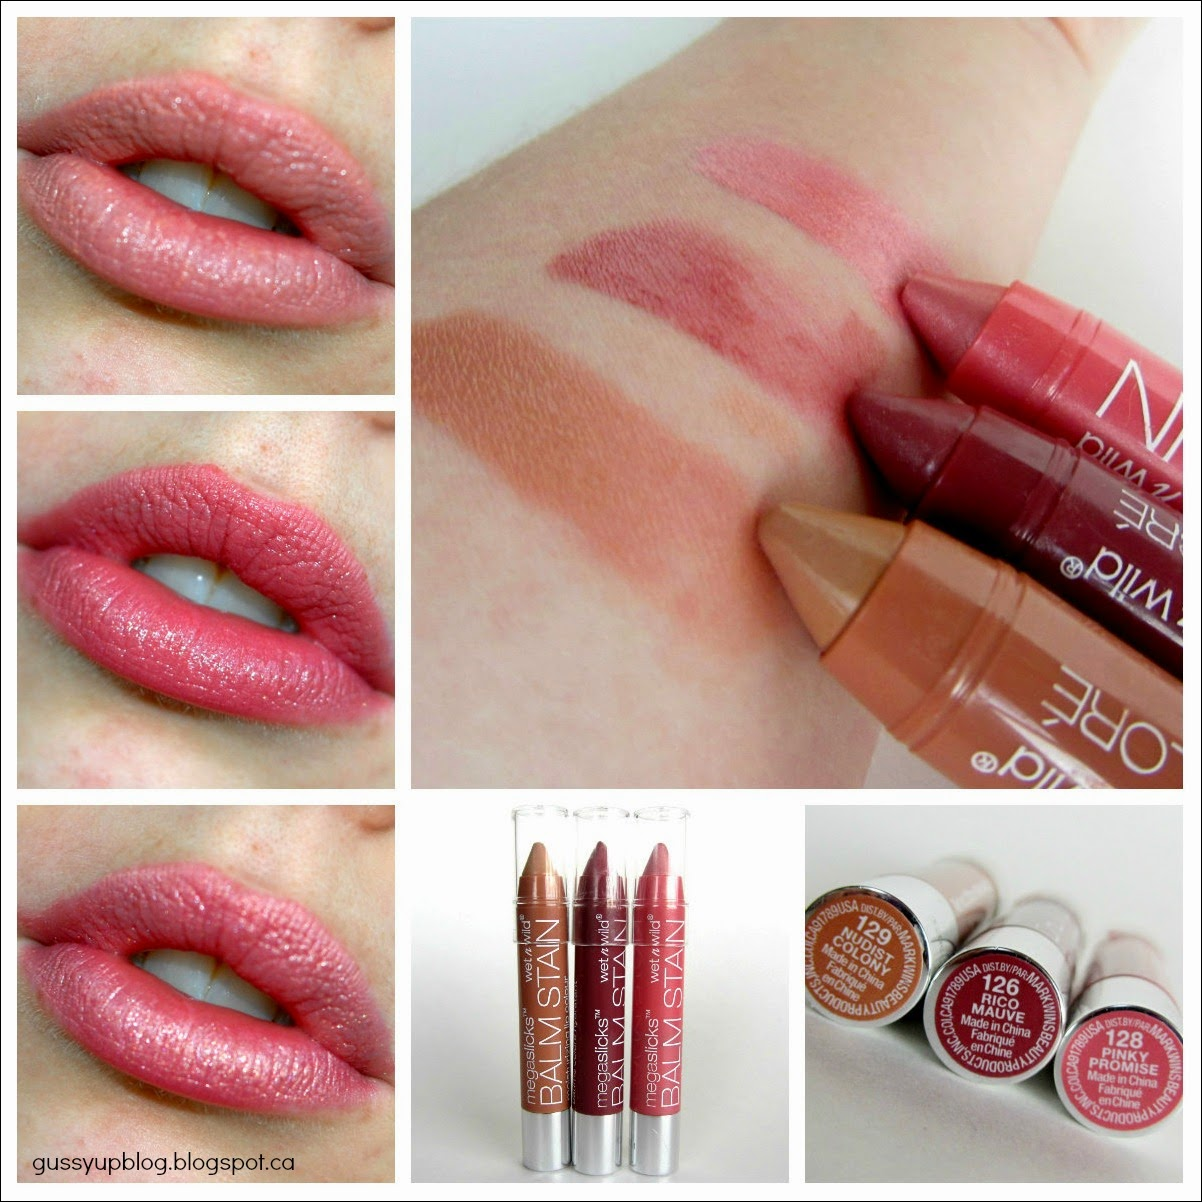 Wet N' Wild Megaslicks Balm Stain Moisturizing Lip Colour in Nudist Colony, Rico Mauve and Pinky Promise, Review and Swatches